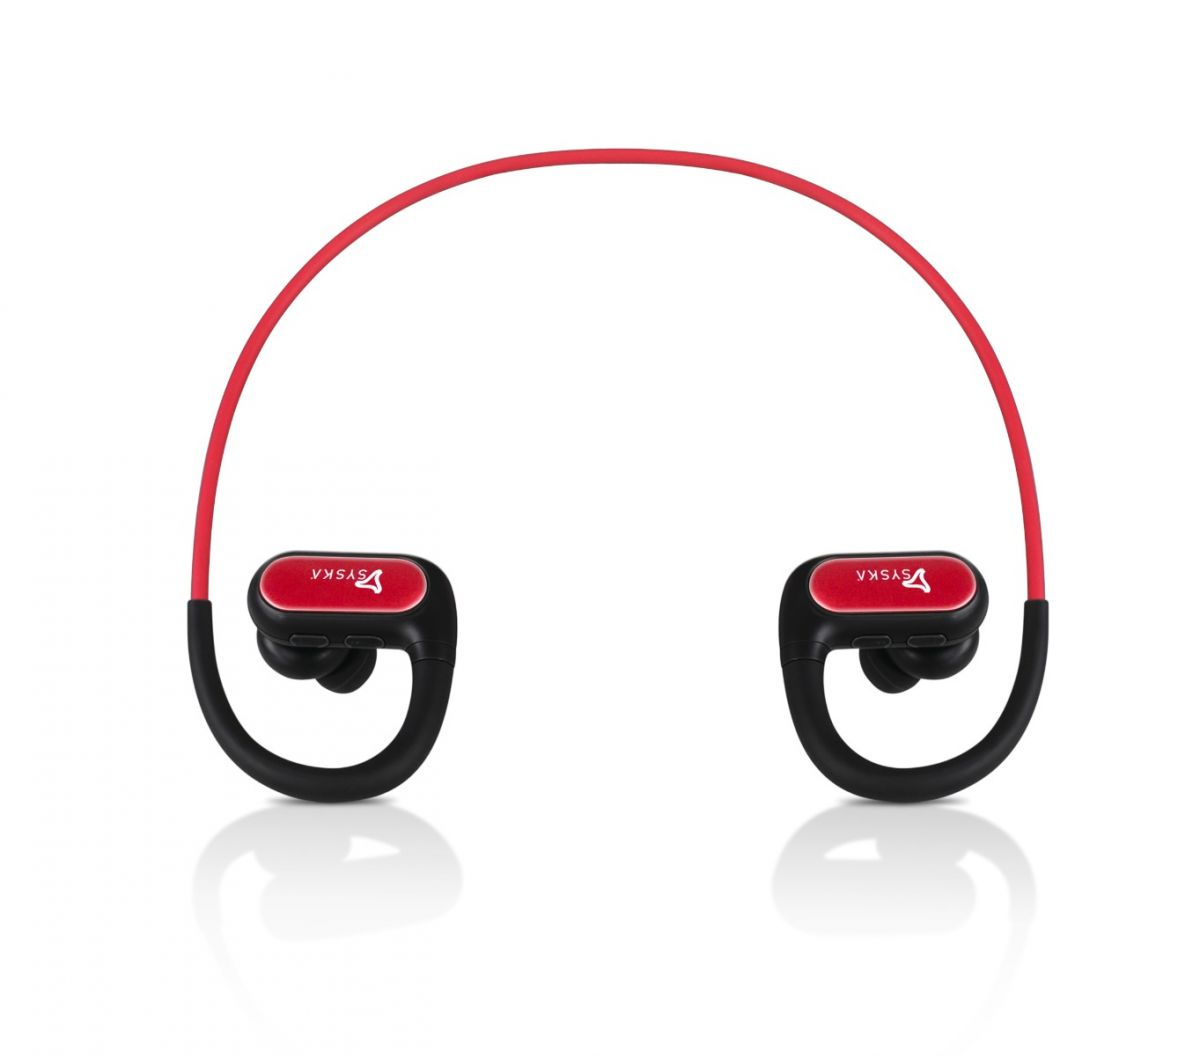 Syska HE5700 Proactive Wireless Earphone